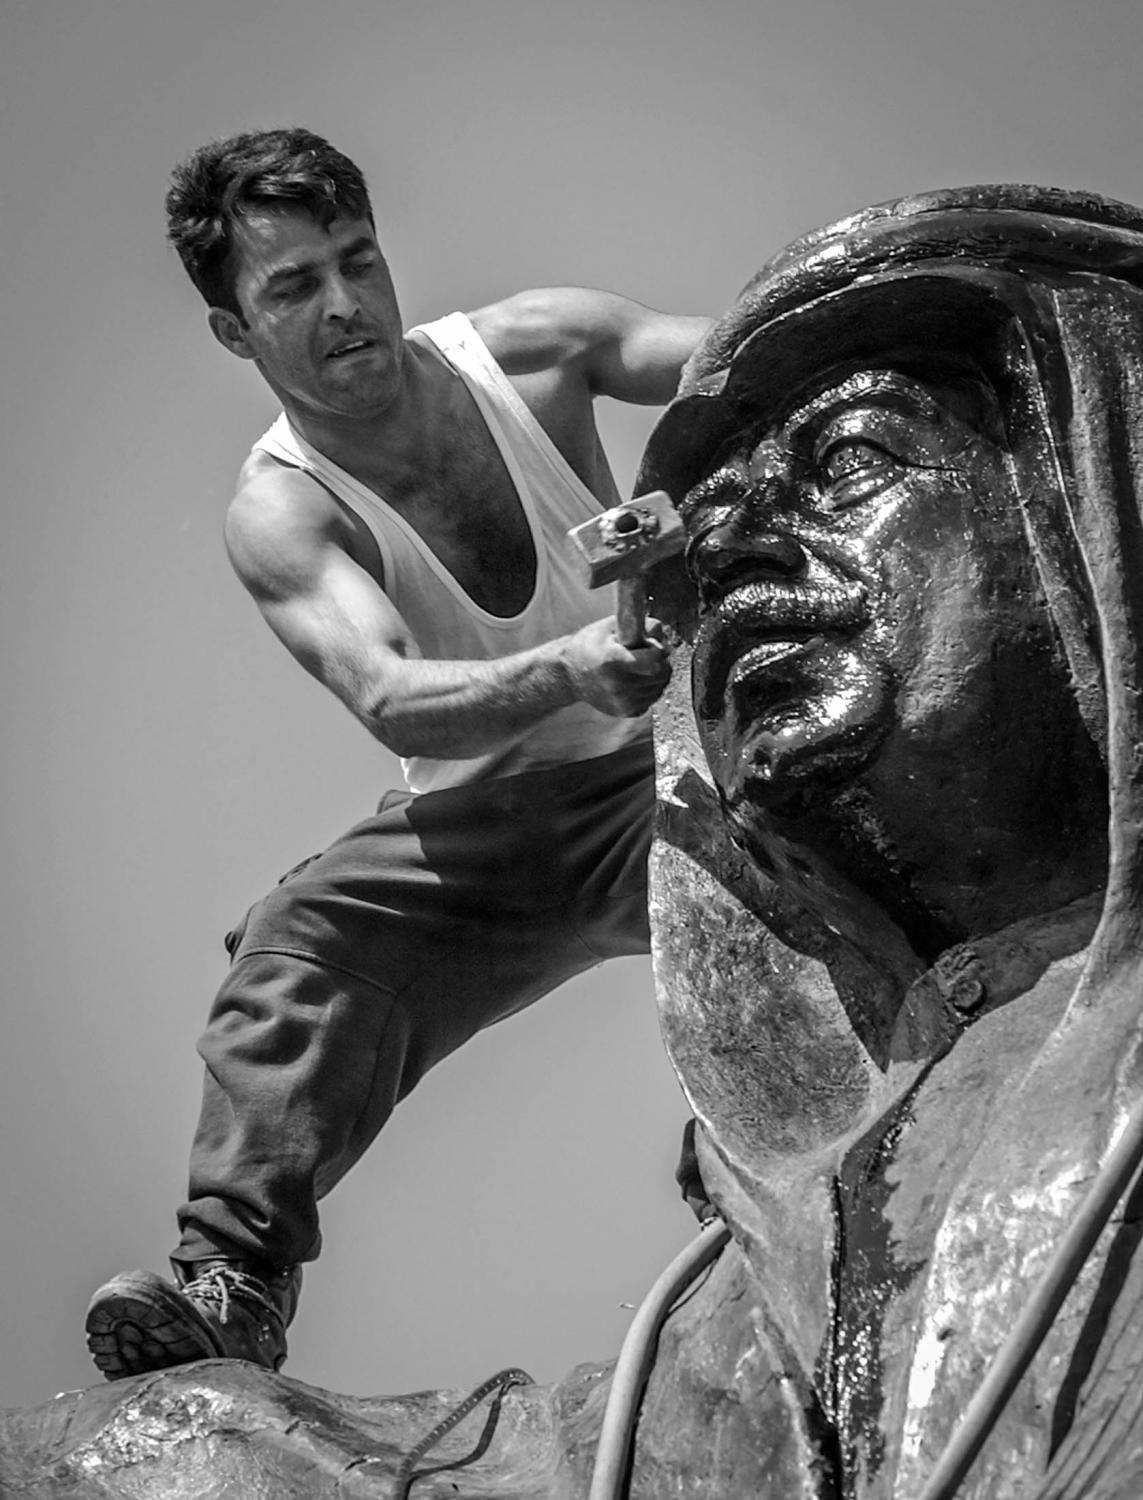 Kurdish man tries to smash the face of Saddam Hussein's statue on the day the City of Kirkuk fell.